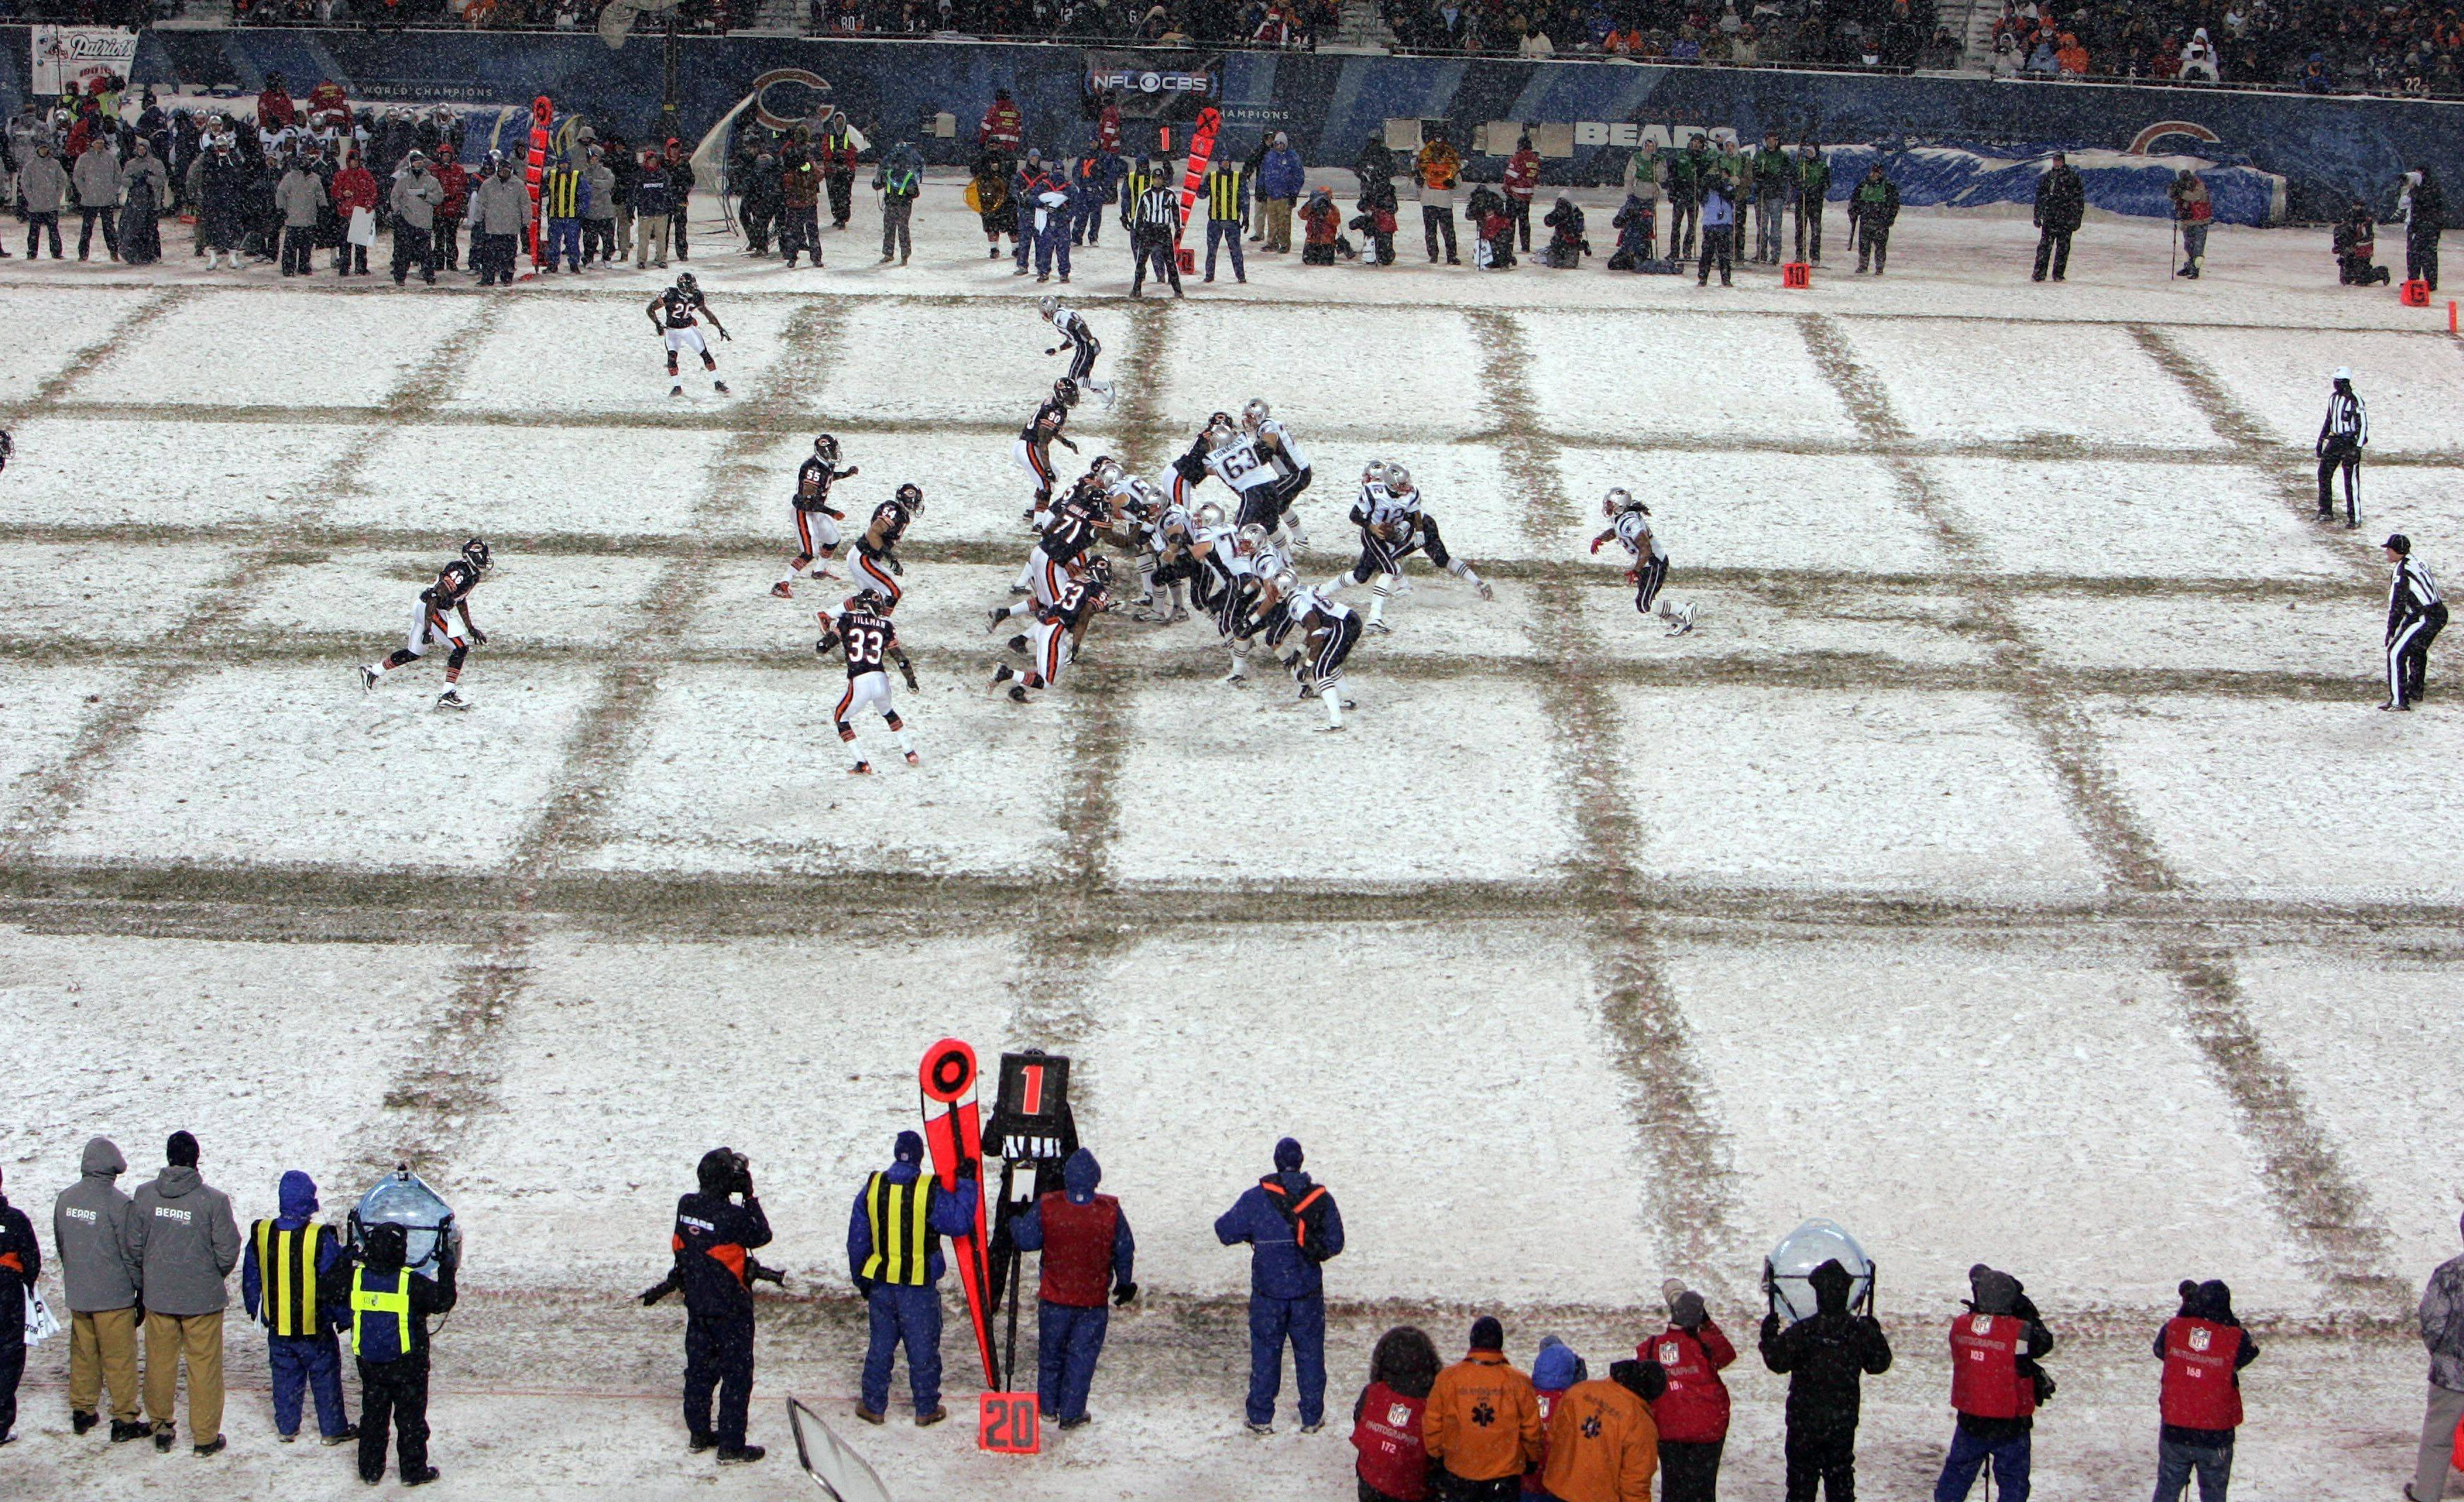 Snow made play difficult between the Chicago Bears and the New England Patriots at Soldier Field.